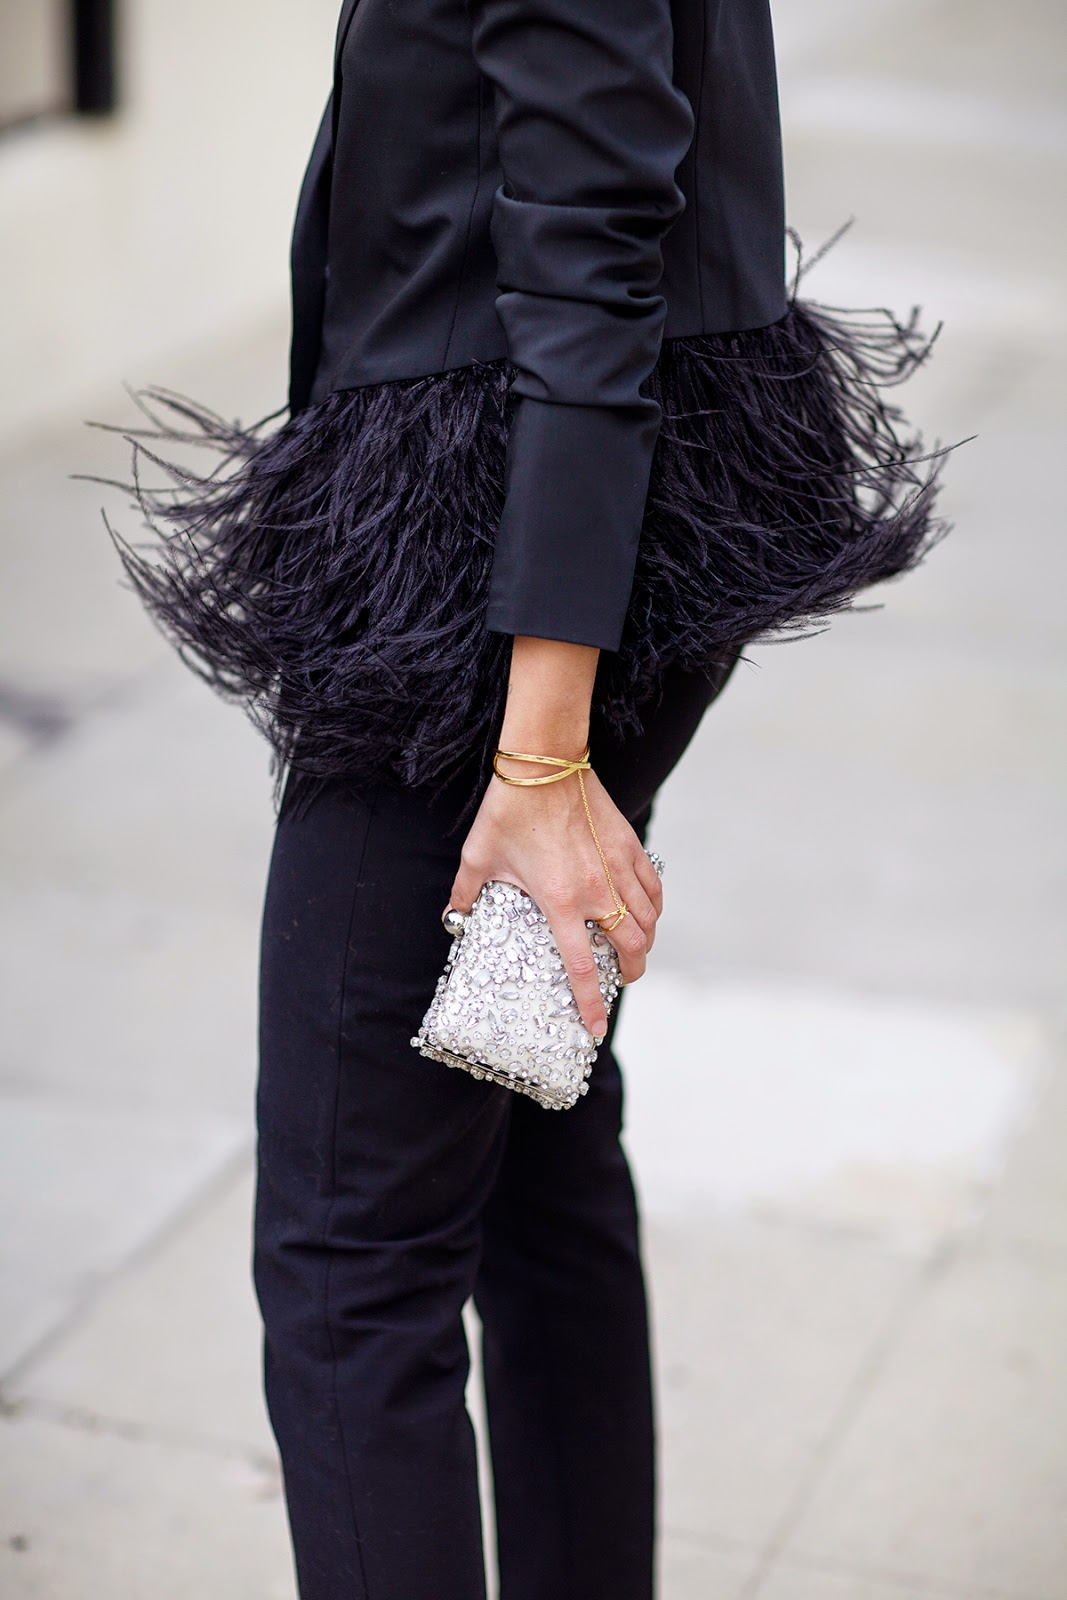 holiday-feathers-going-out-winter-via-via-whowhatwear